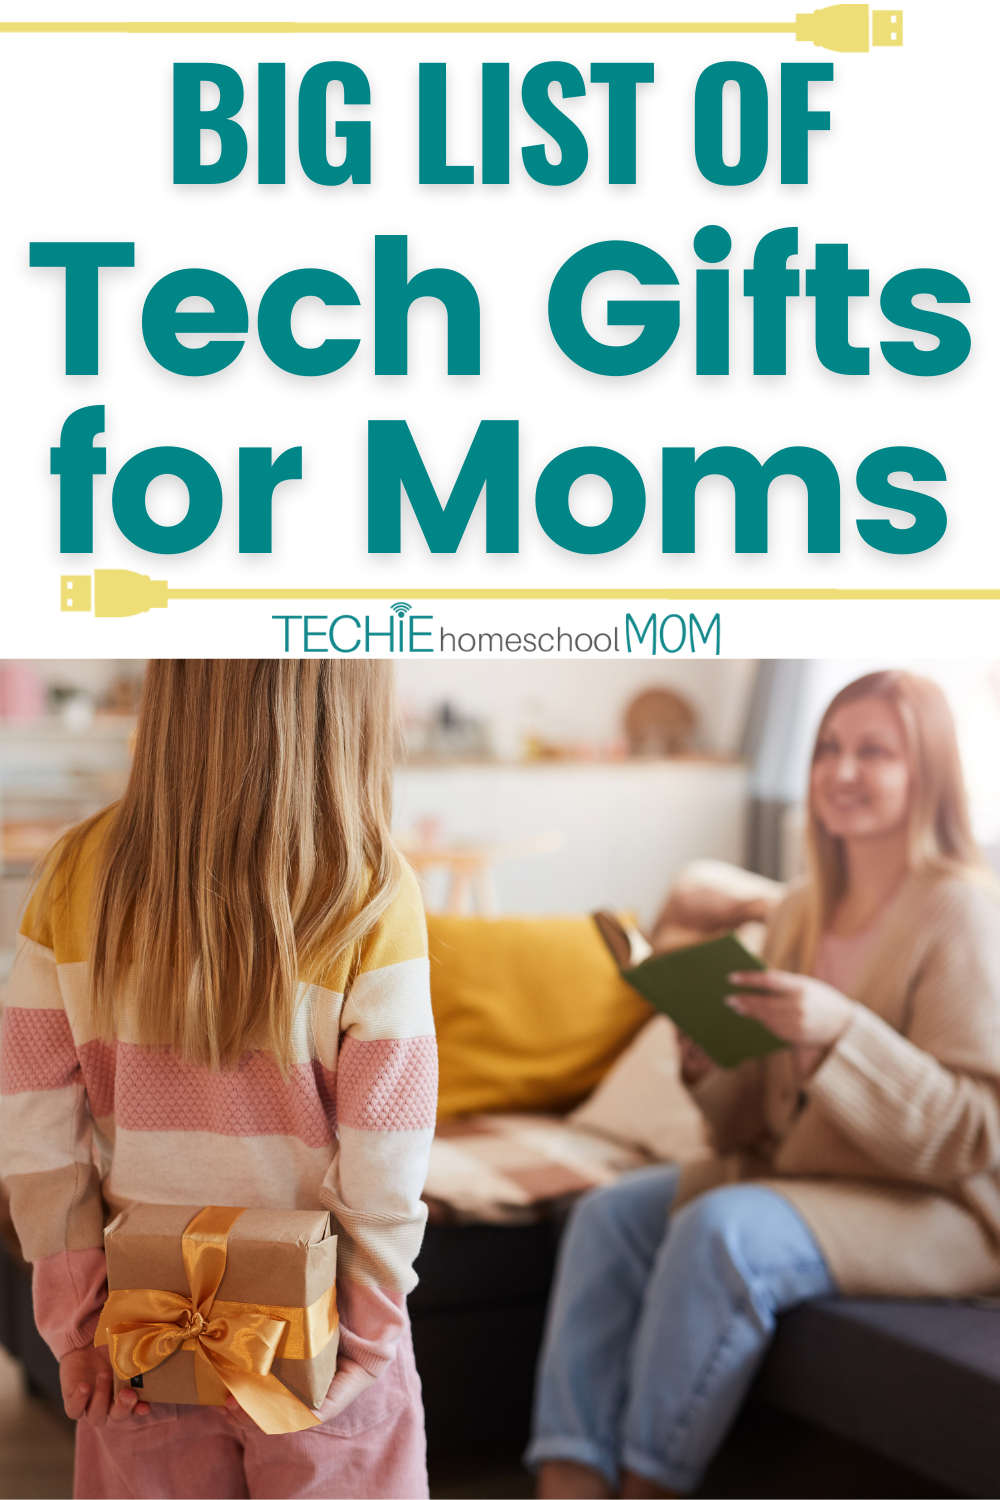 Gotta' Mother Who Loves Gadgets and Gizmos? Check Out This List to Find the Best Tech Gift for Mom.